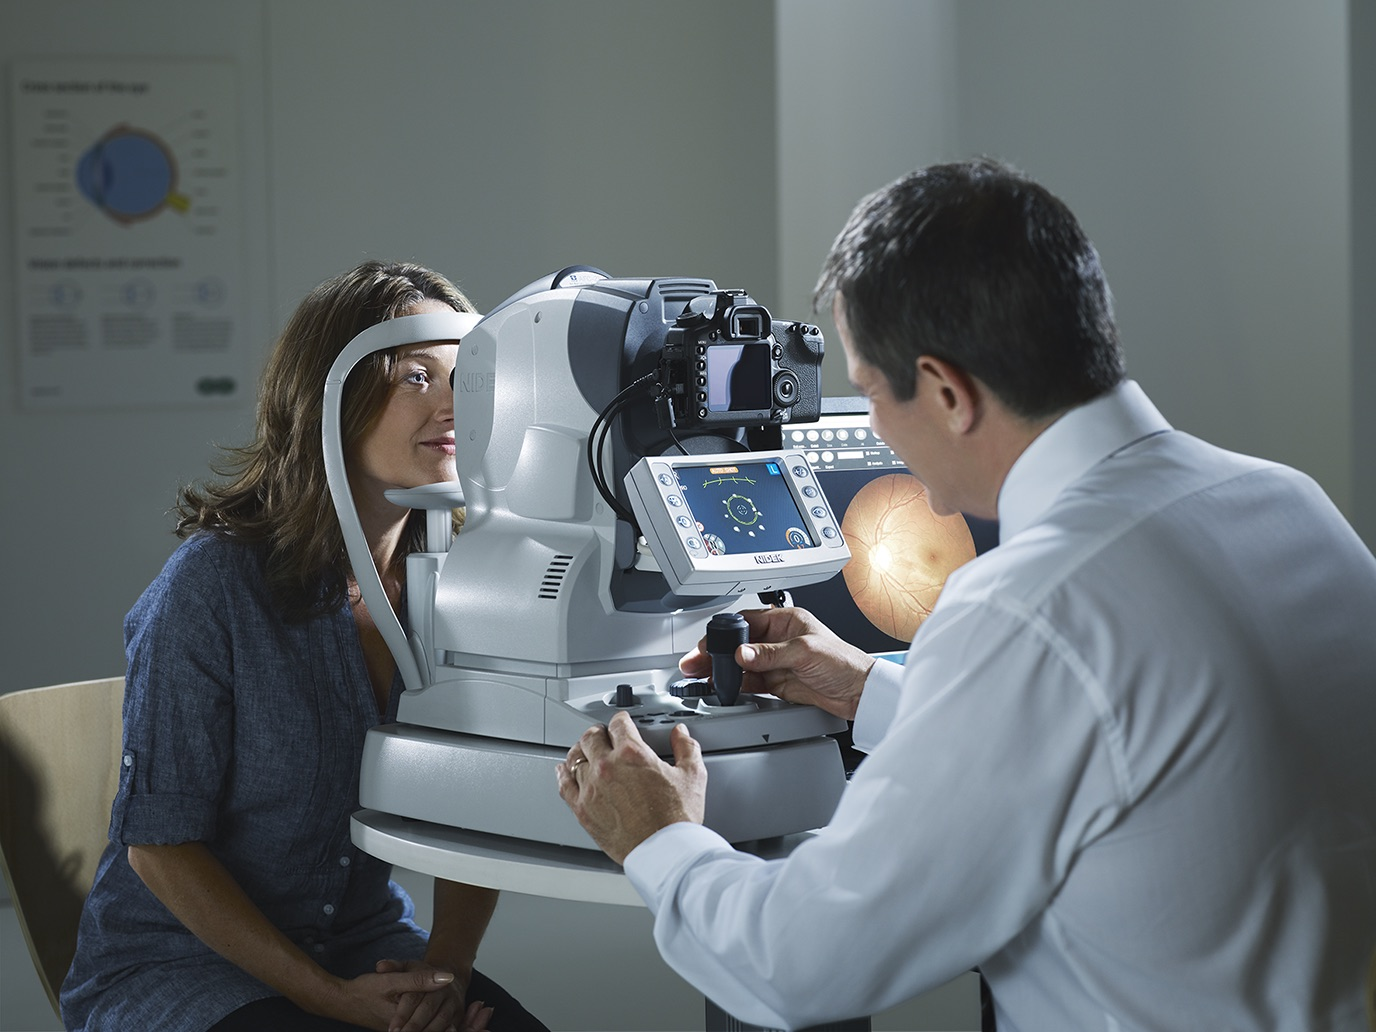 19e8a3d8c10 New warning over undiagnosed high blood pressure highlights importance of  employee eyecare